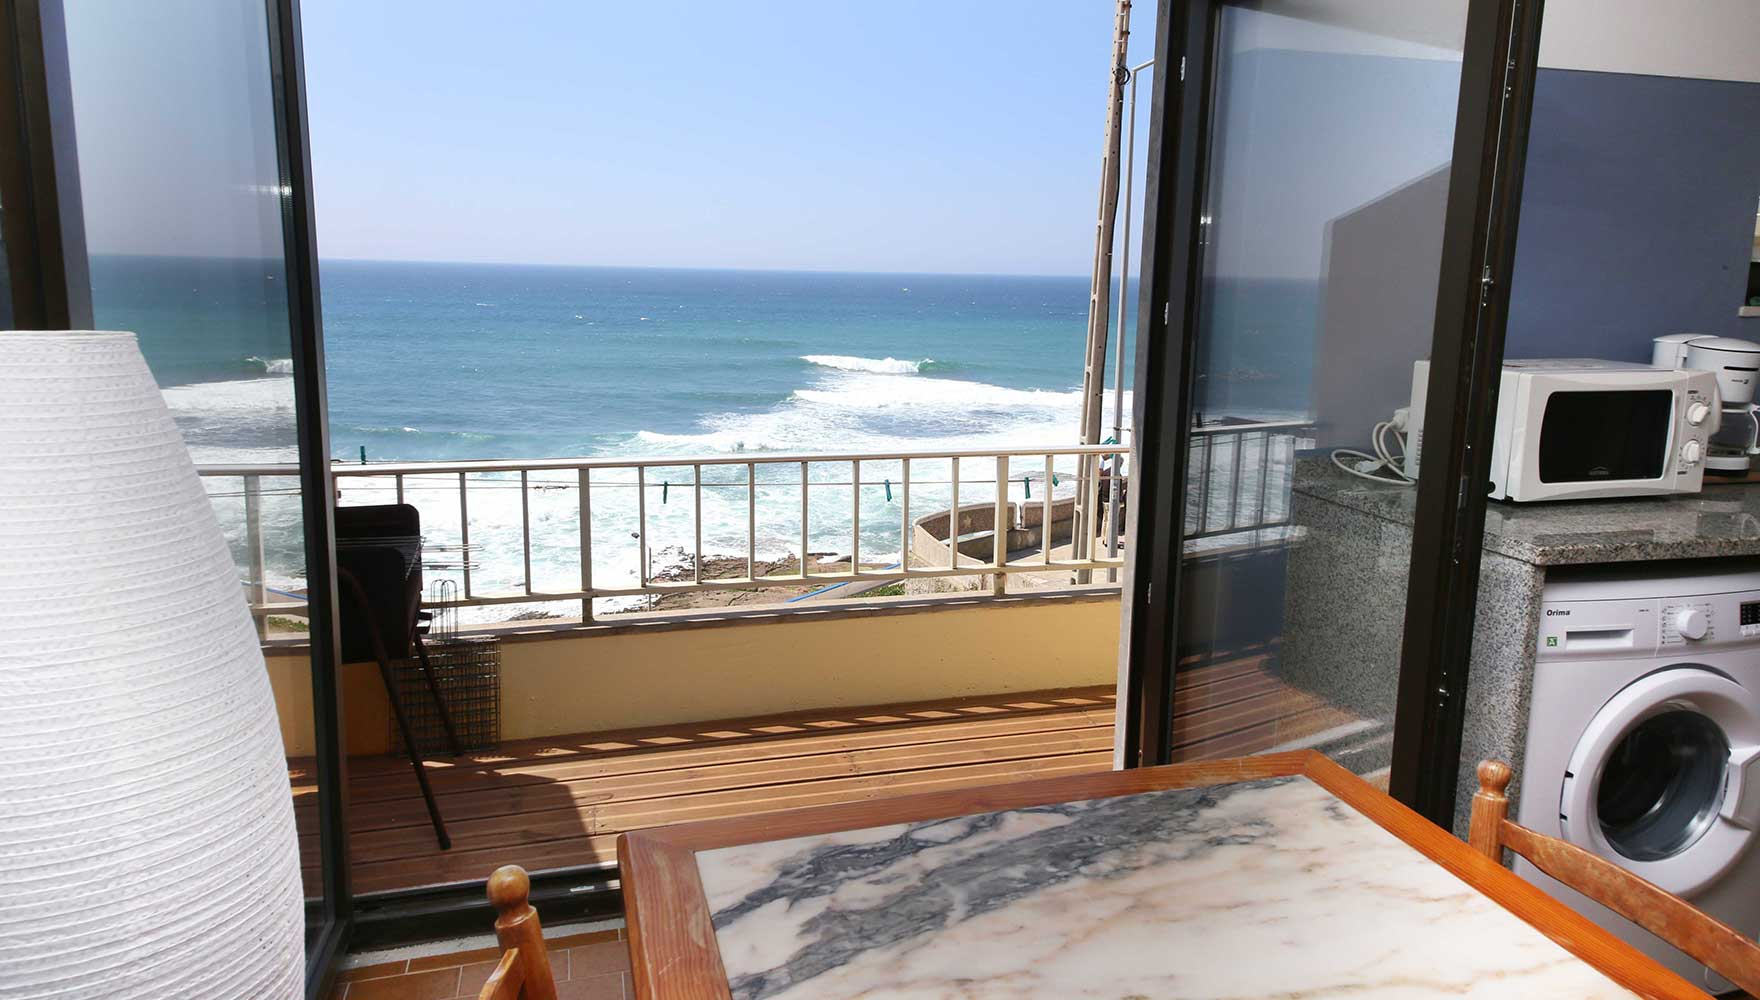 the new panorama window and outside deck